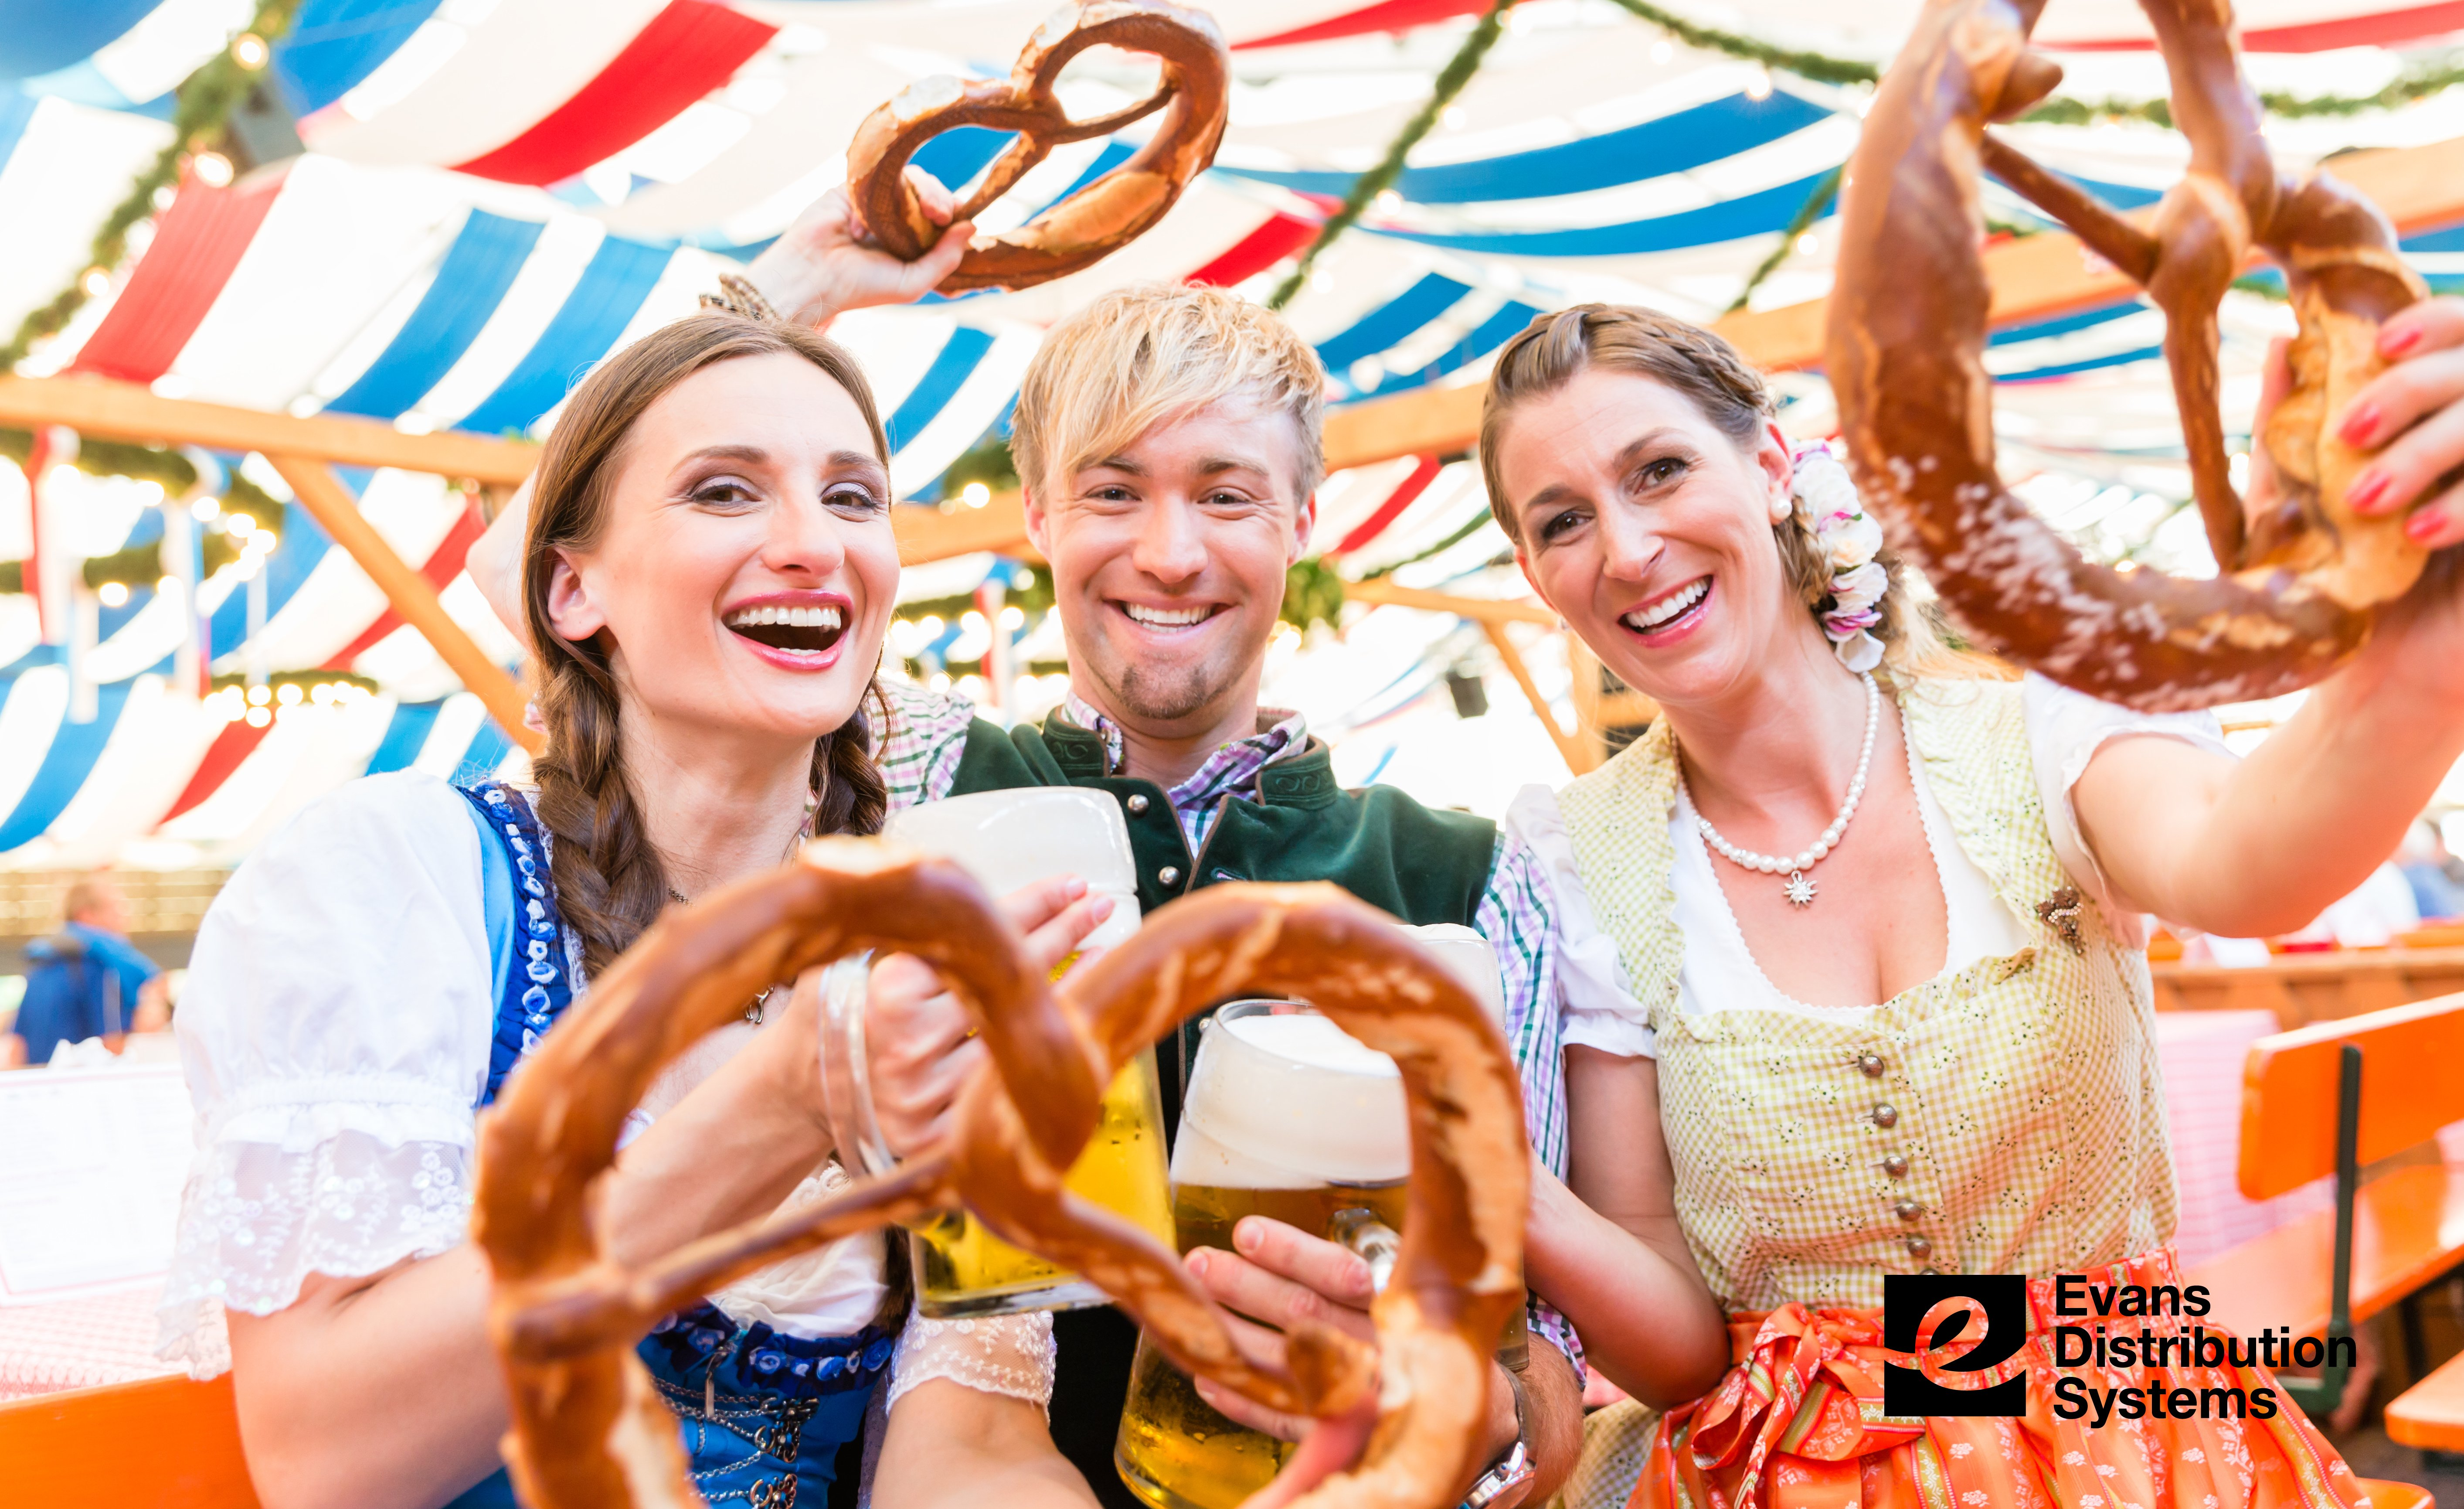 Michigan, It's Time to Bring Out Your Dirndl or Lederhosen!